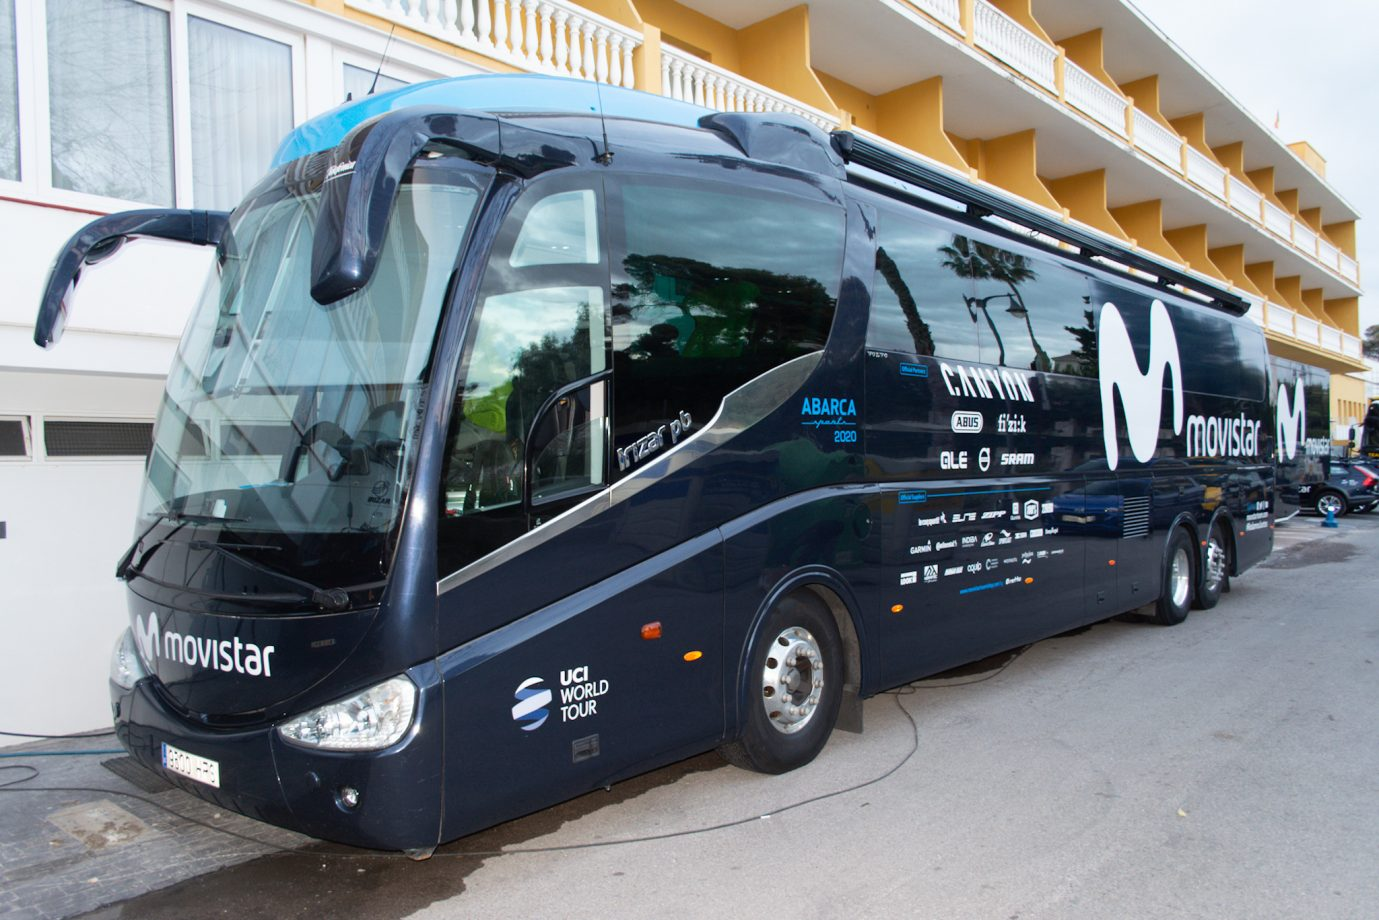 Imagen de la noticia 'A quick look to the 2020 Movistar Team bus'